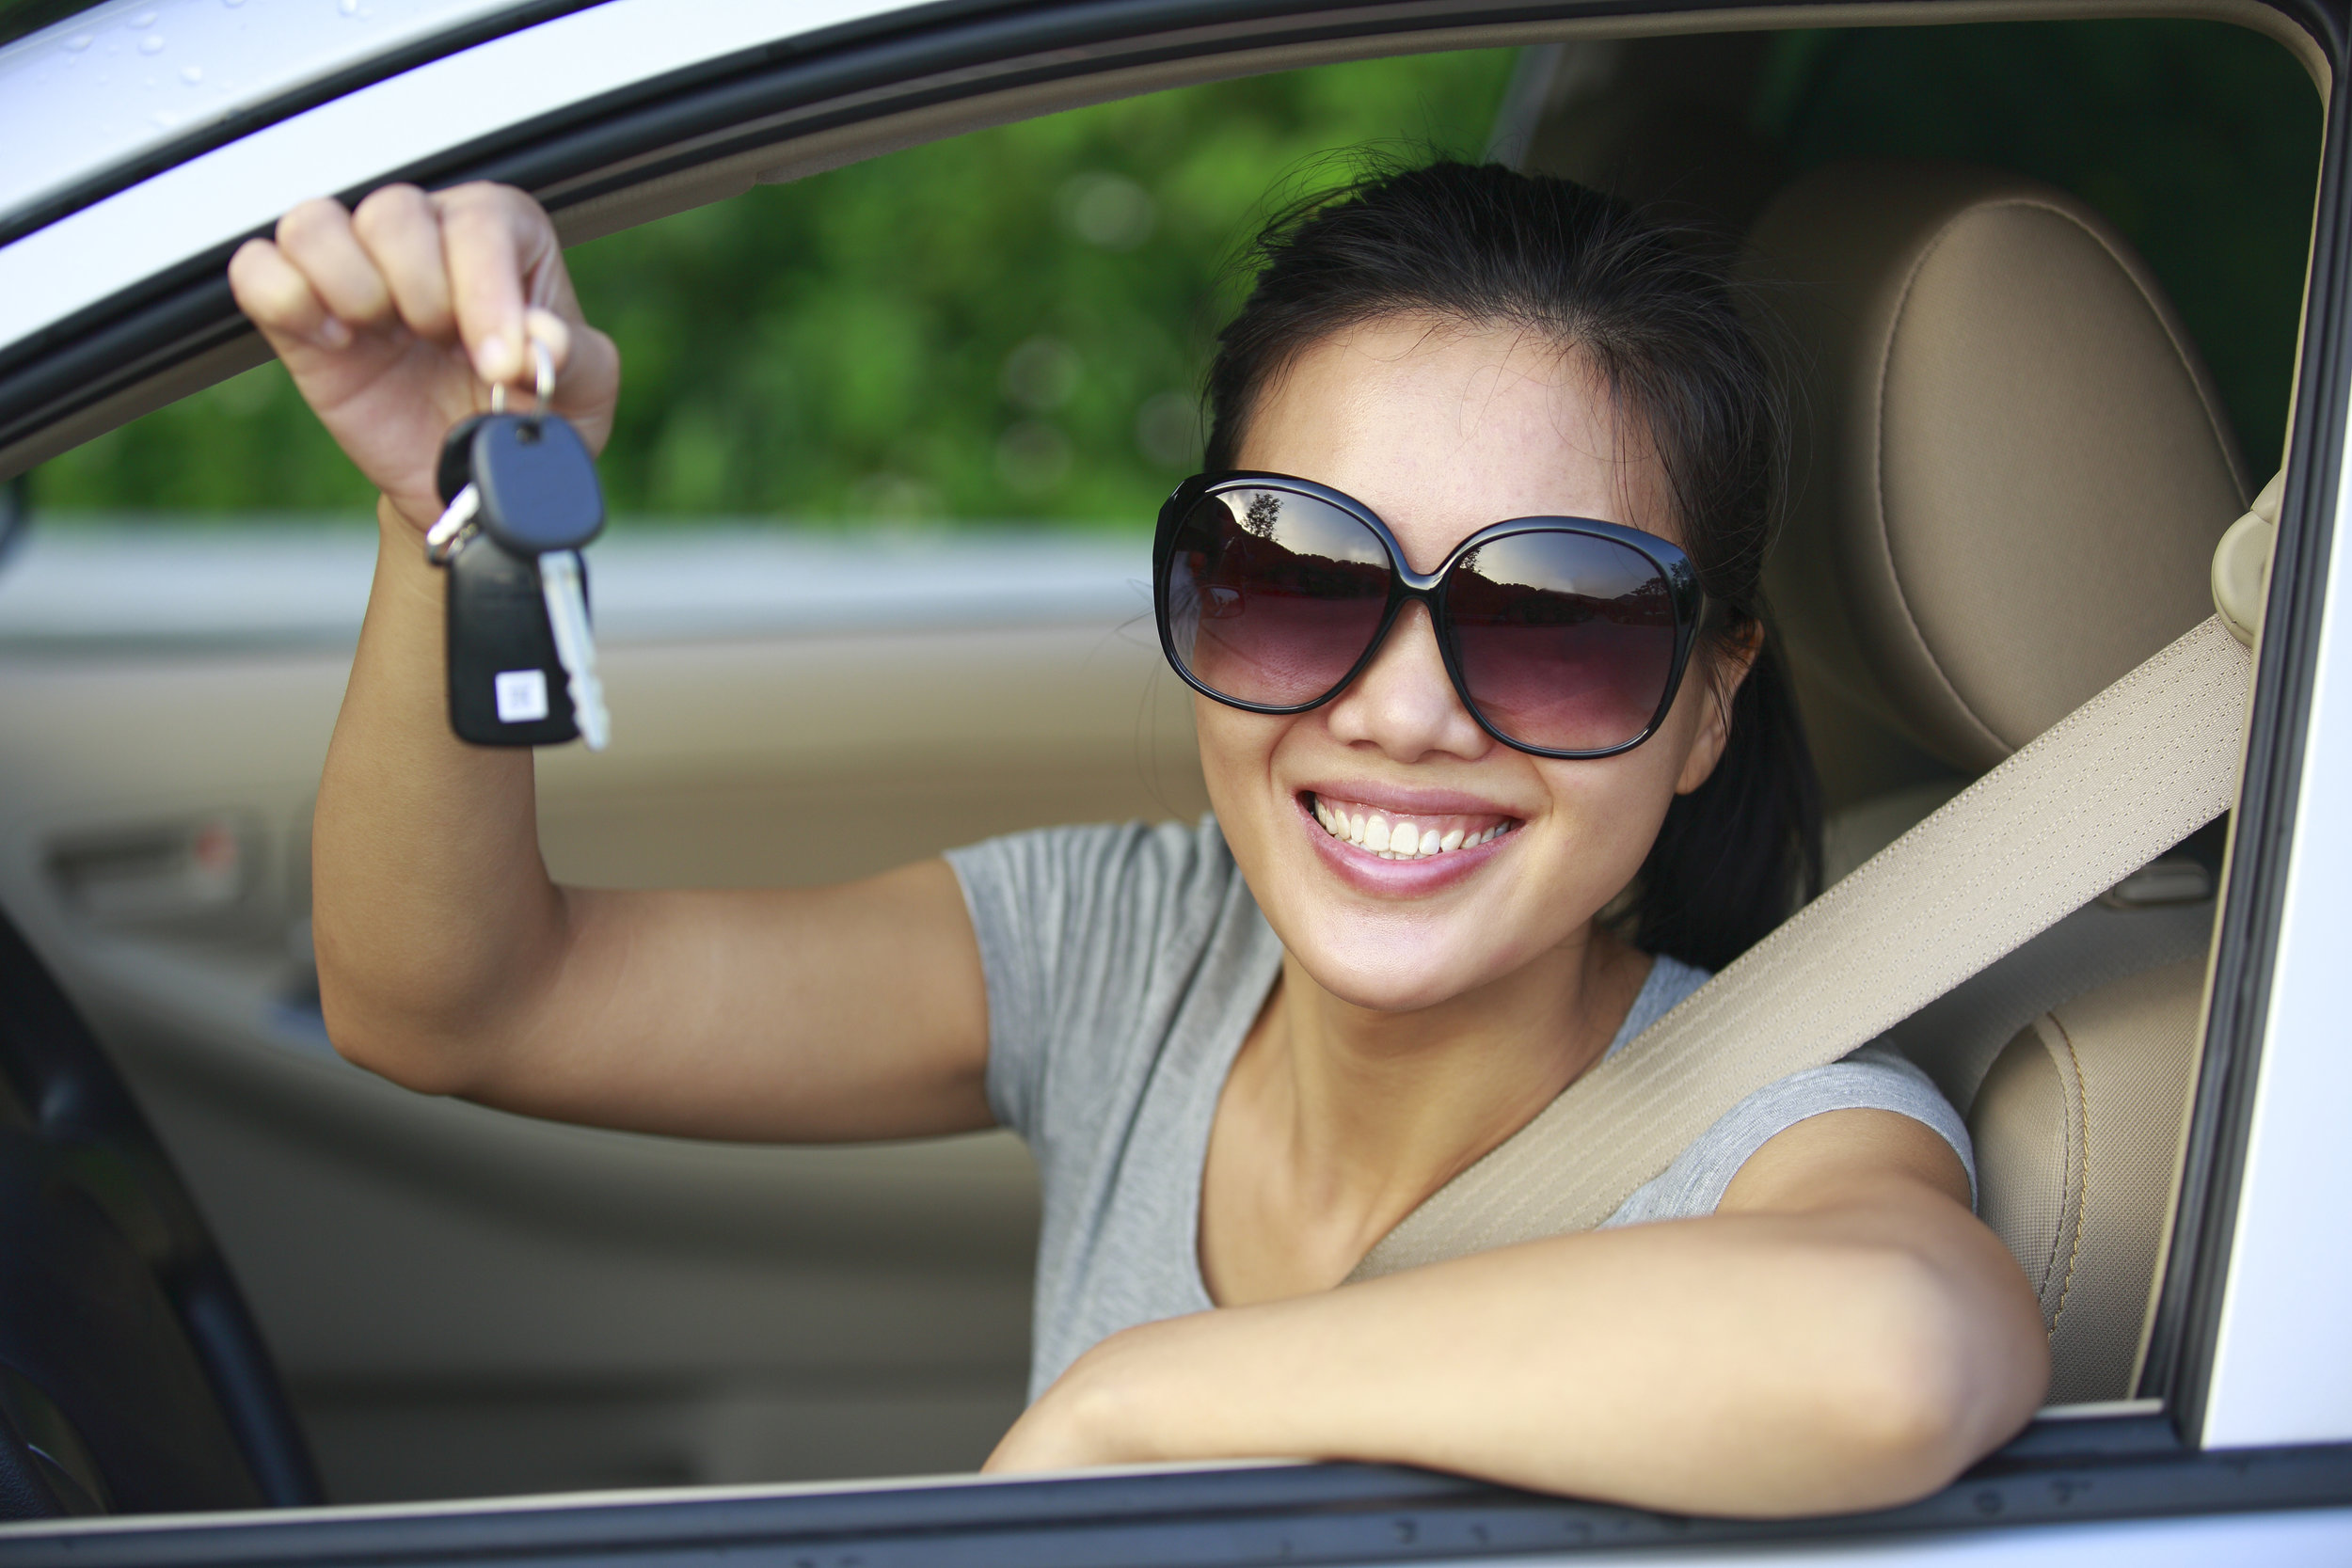 Vehicle financing assistance for lower-income consumers, california climate investments.the image depicts a woman smiling and holding a set of car keys.